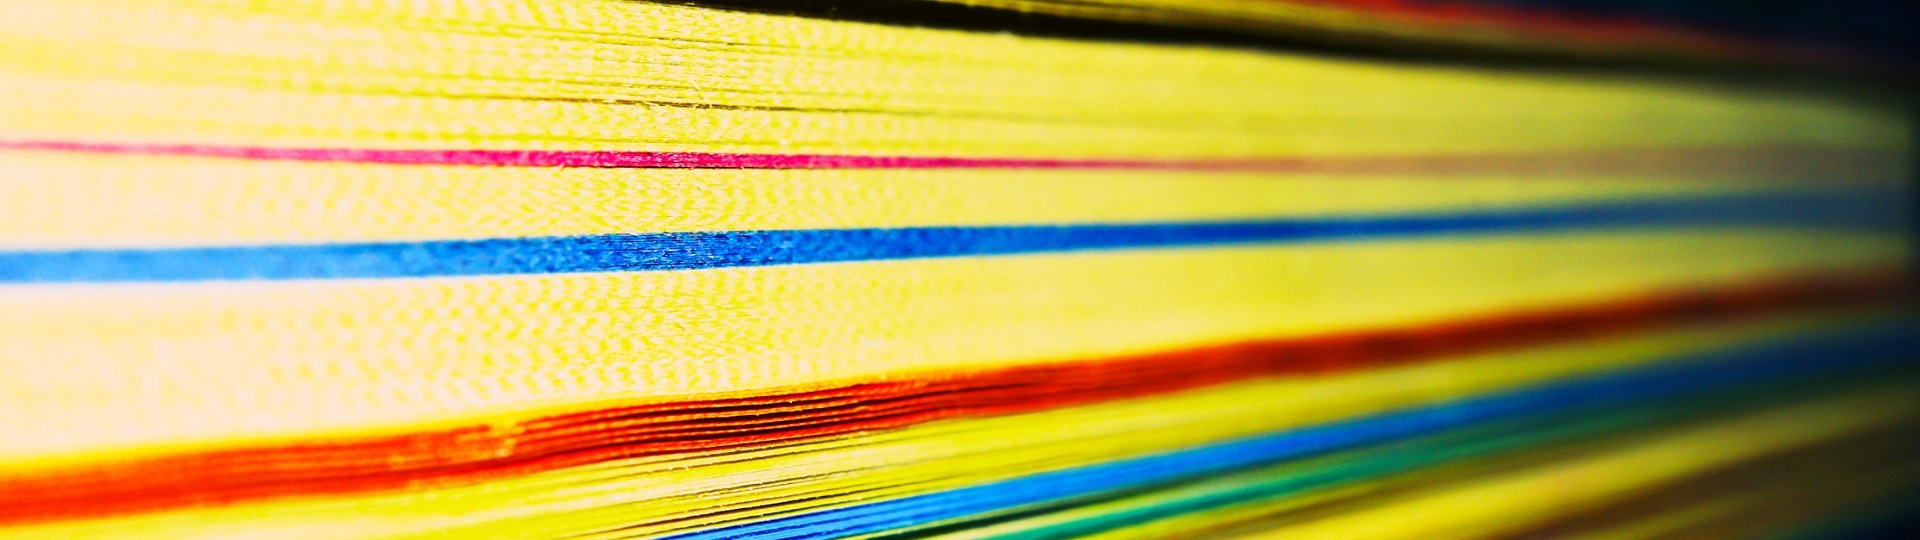 Phonebook, by odanielgp/Flickr, Creative Commons